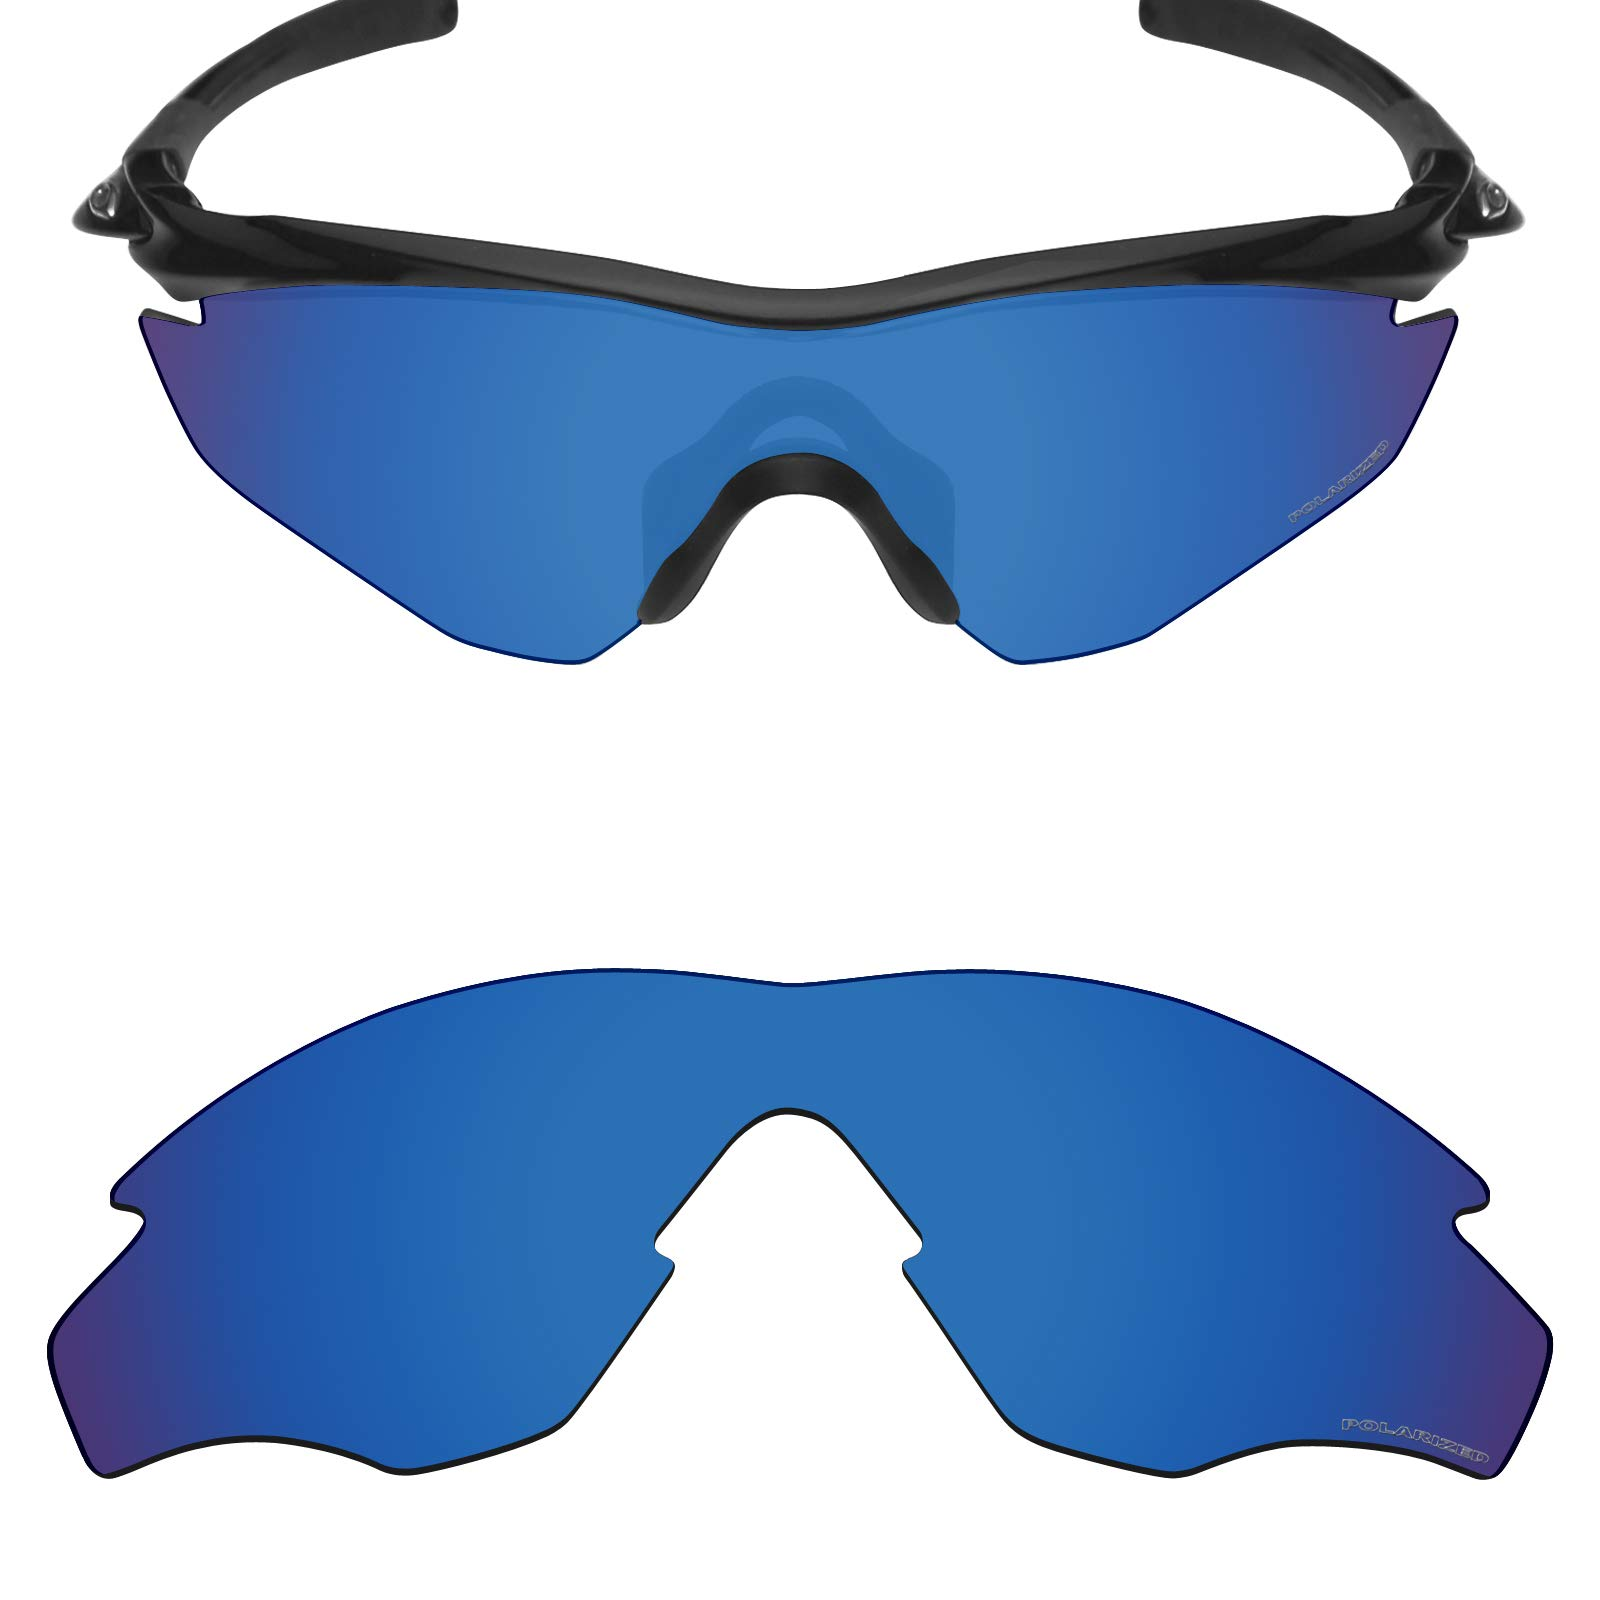 709eaf1352 Mryok+ Polarized Replacement Lenses for Oakley M2 Frame   M2 Frame XL -  Pacific Blue